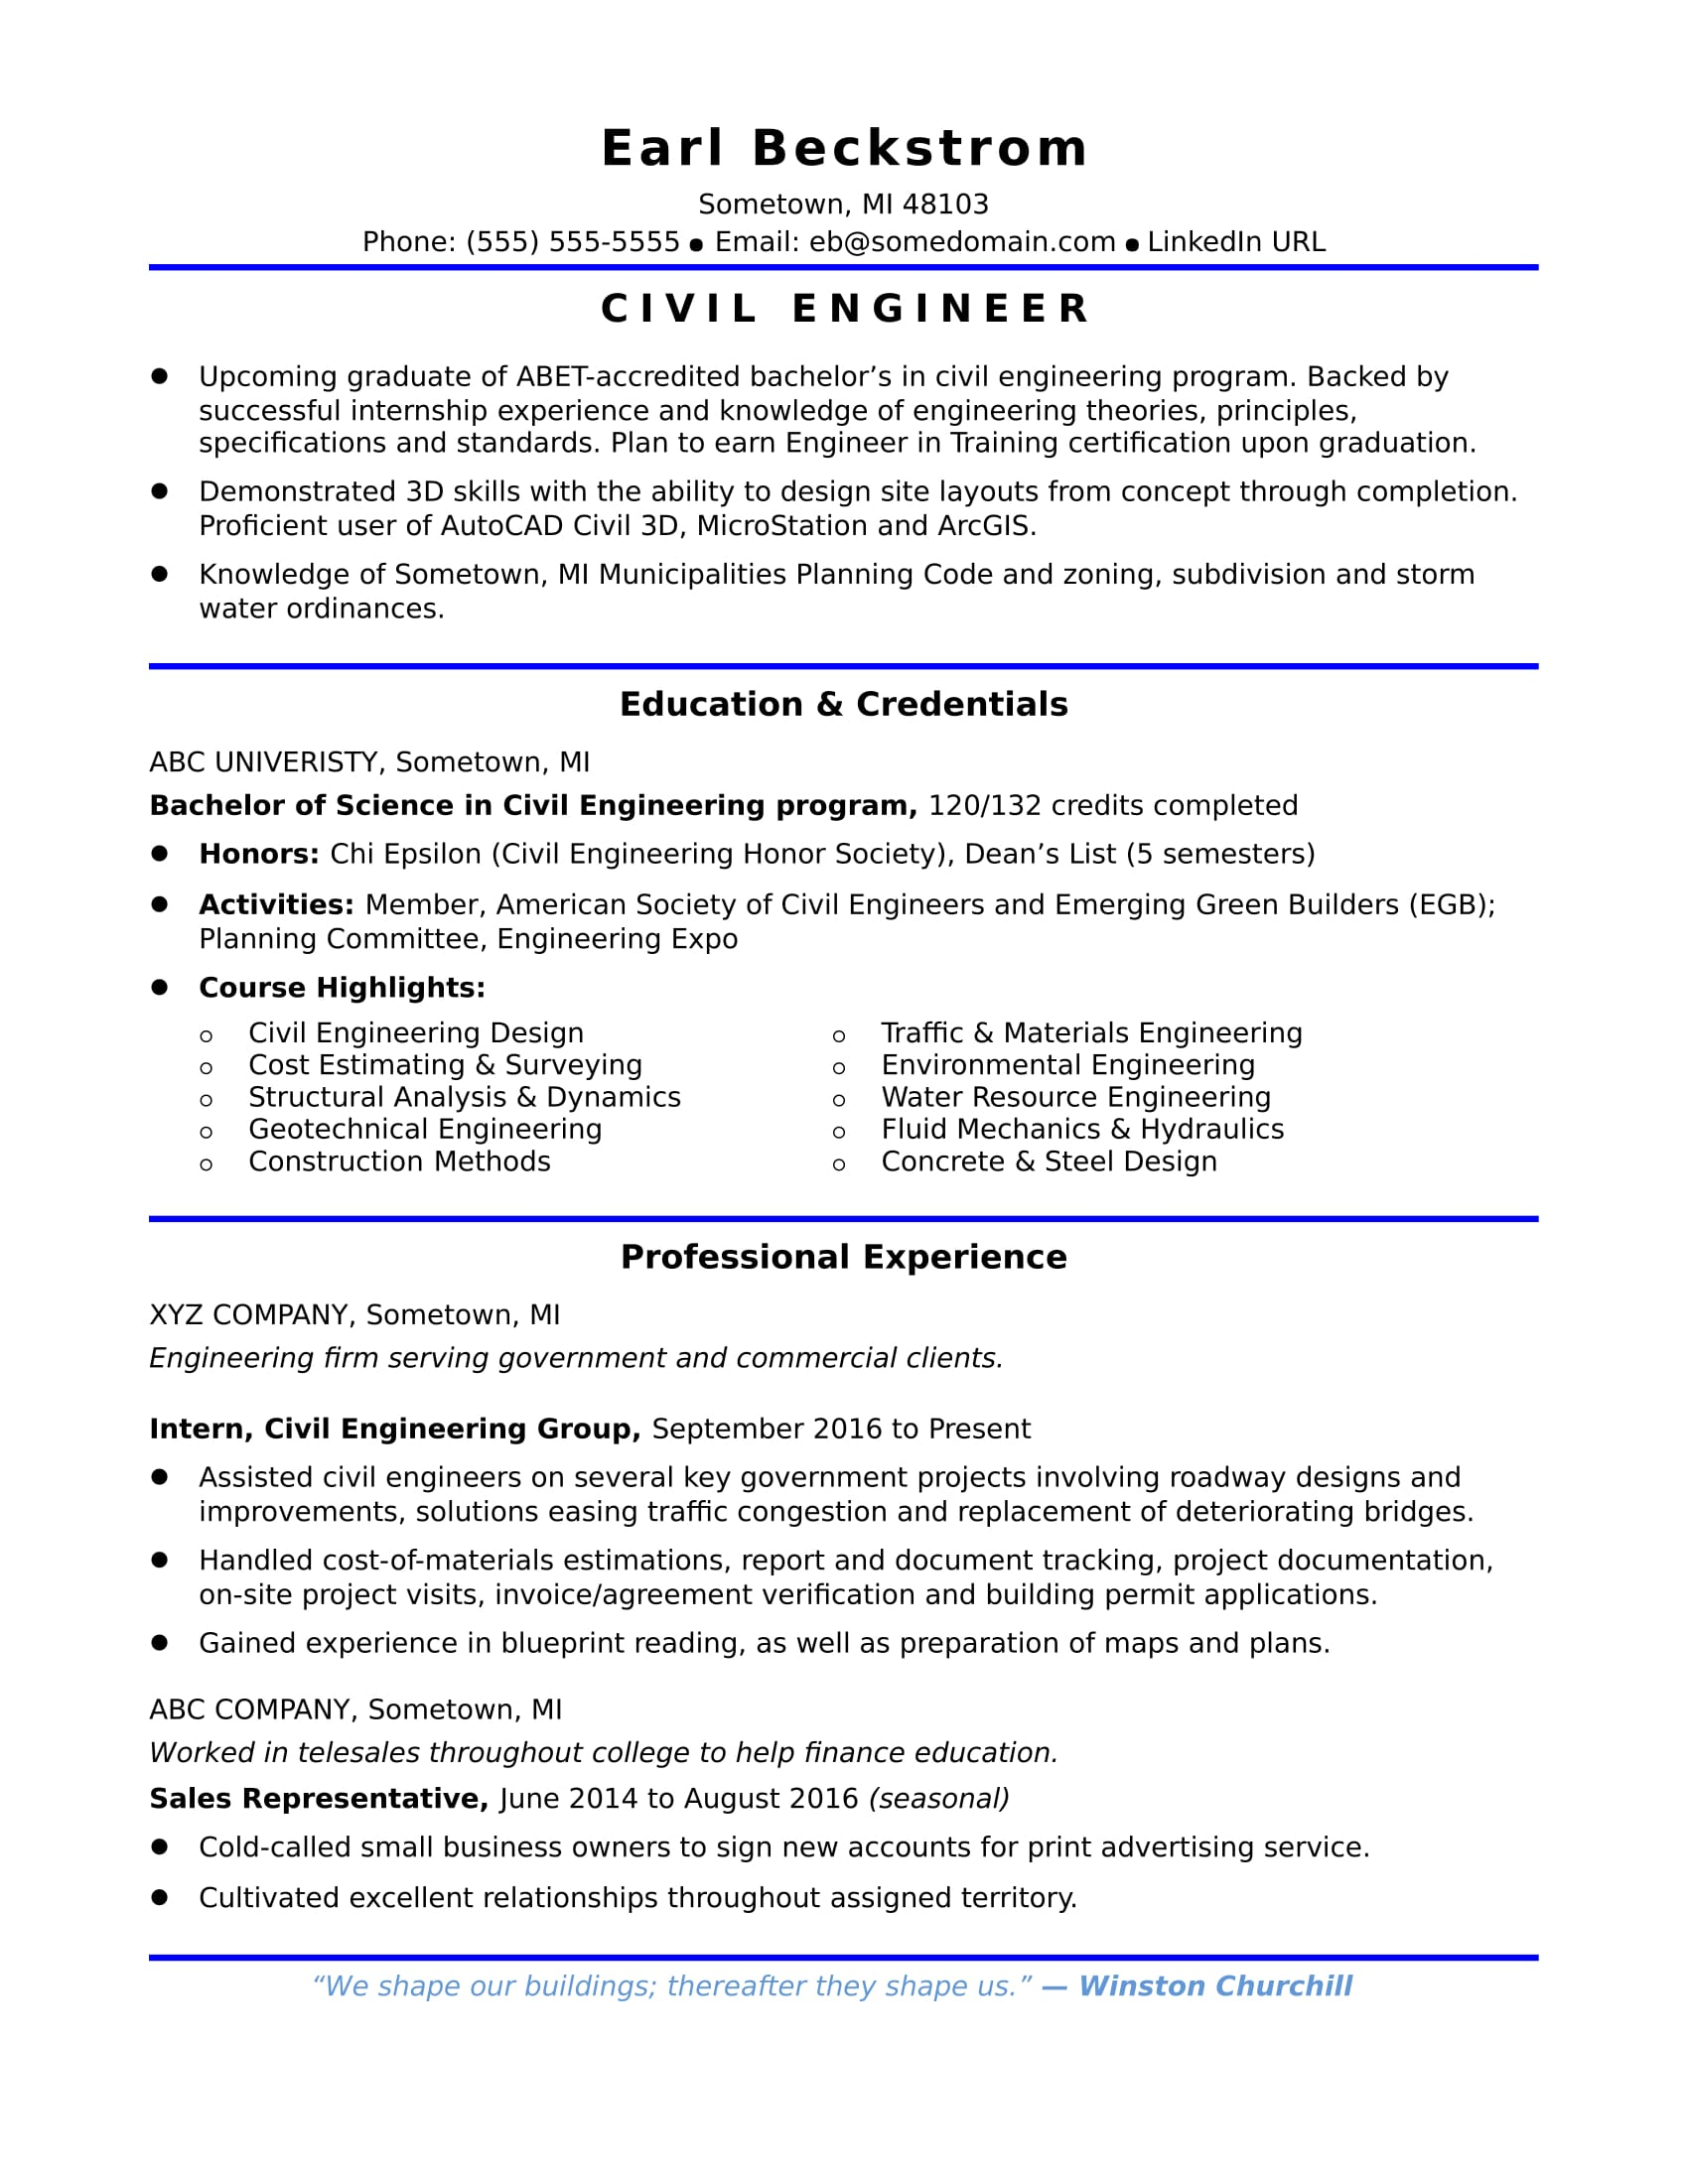 Sample Key Skills For Resume Sample Resume For An Entry Level Civil Engineer Monster